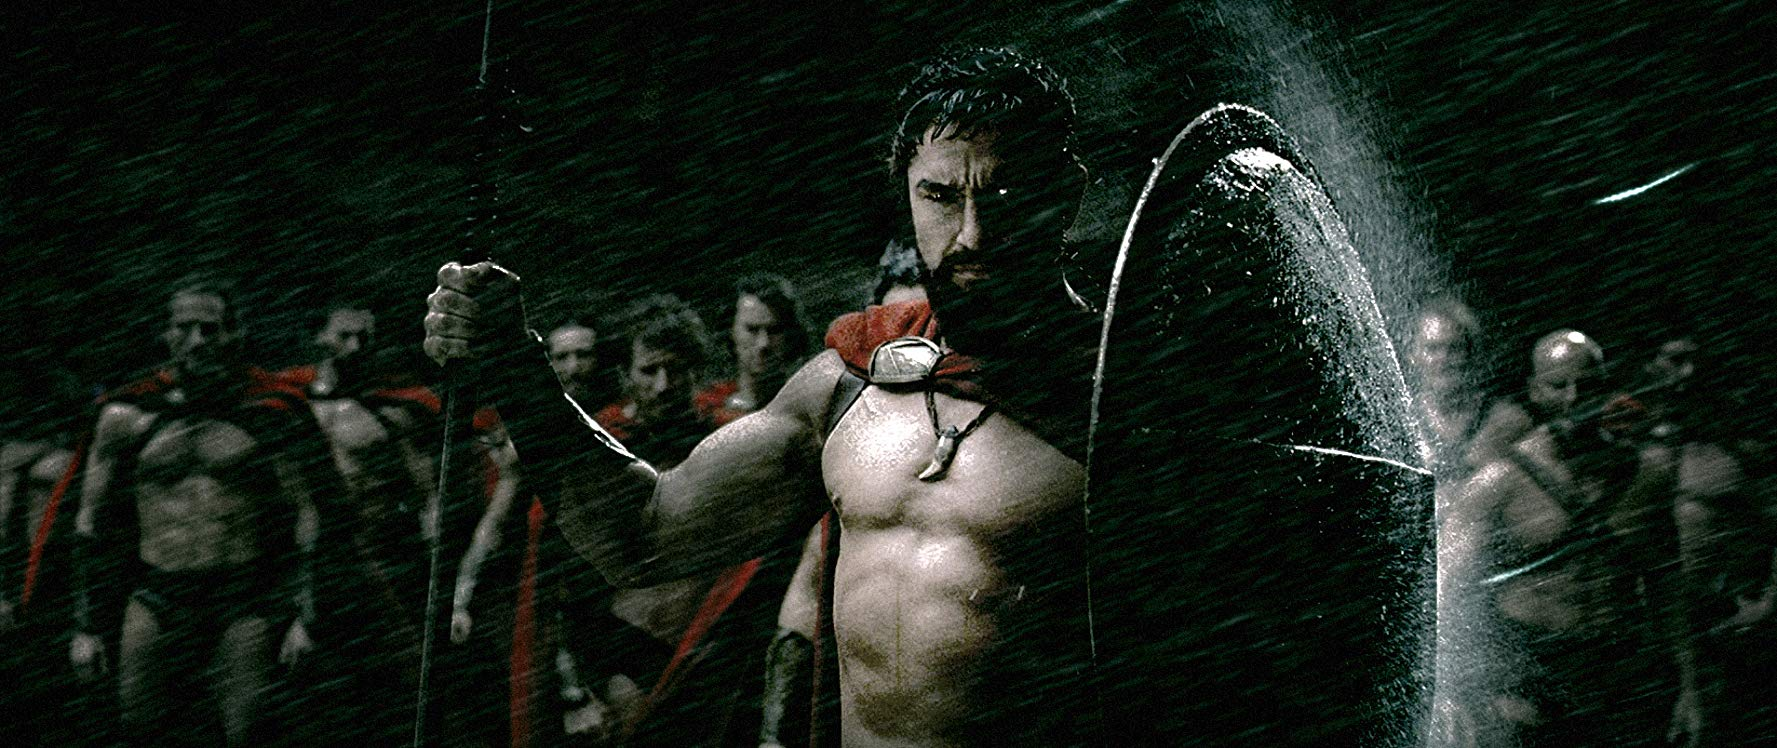 Gerard Butler leads the Spartans to war in 300 (2007)